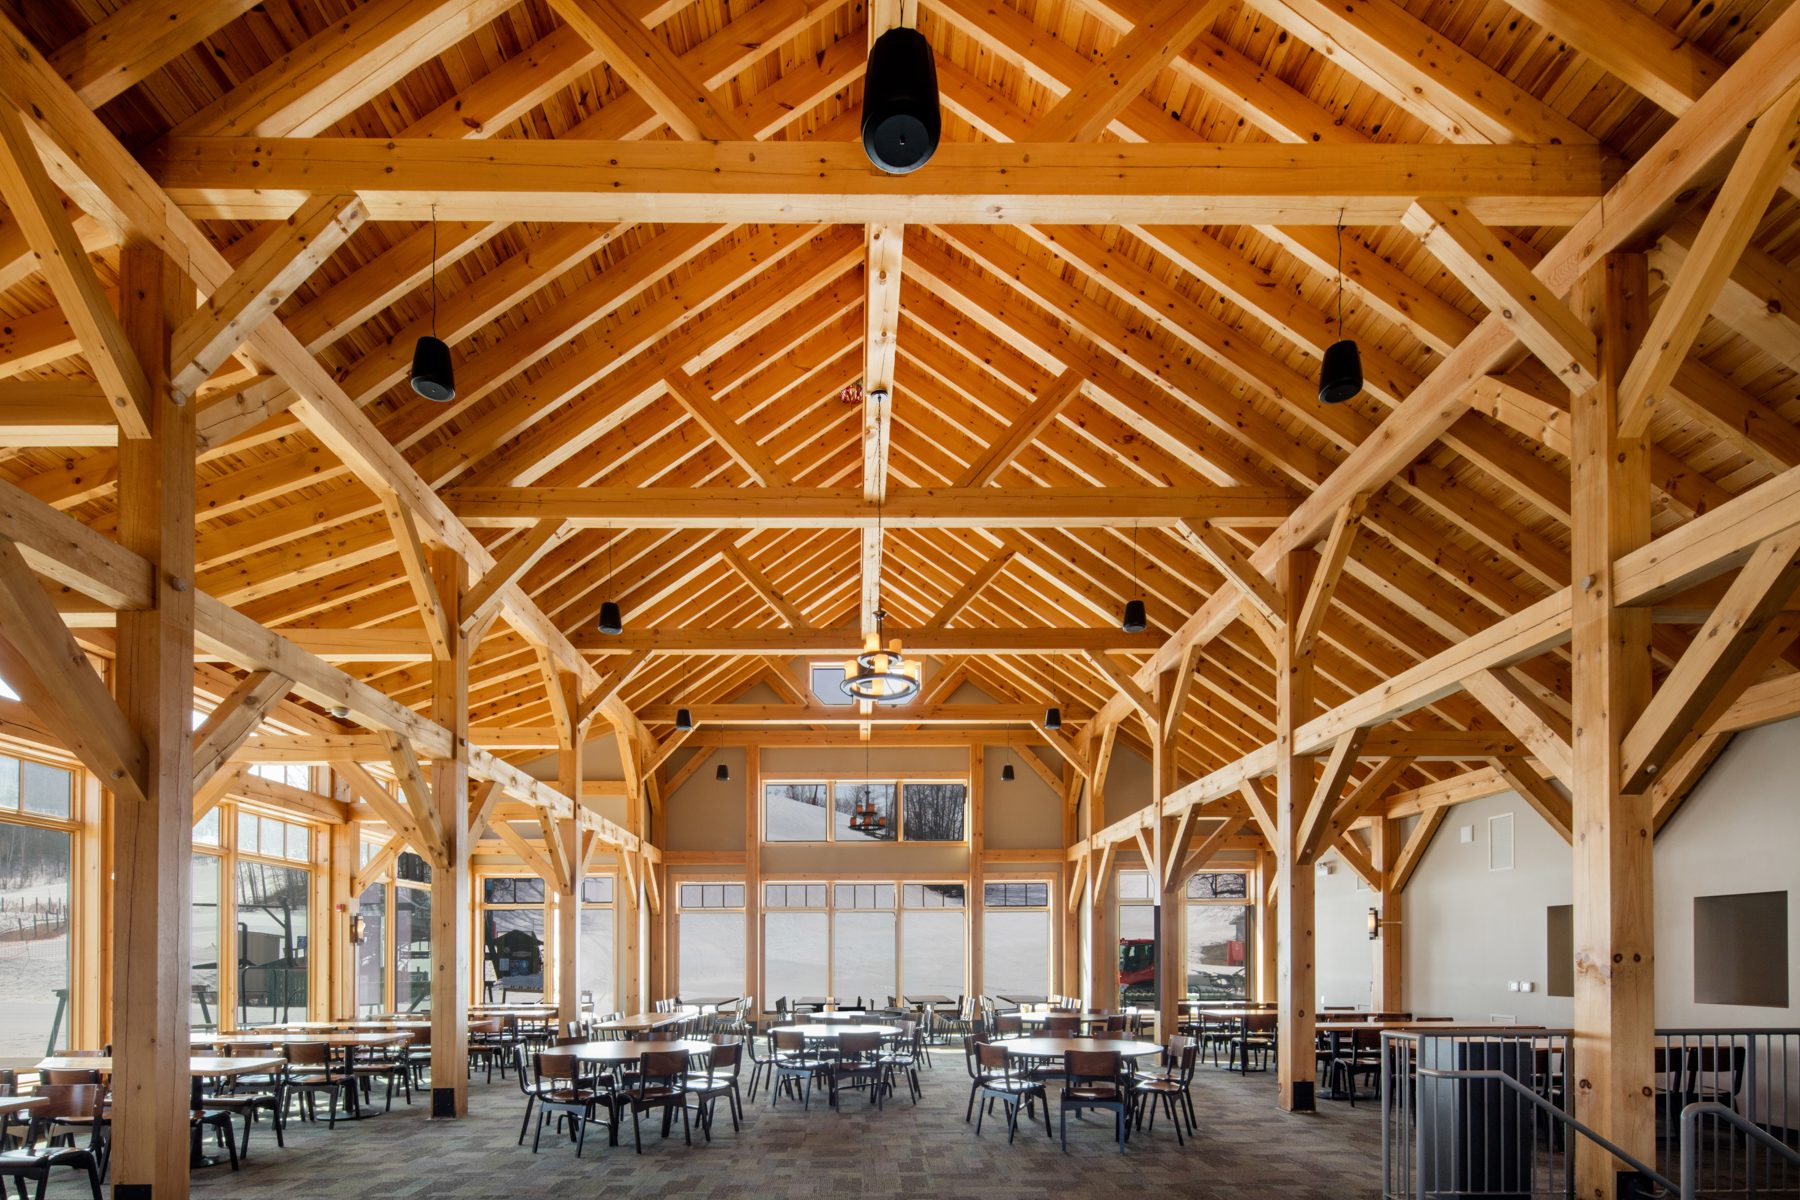 Normerica Timber Frames, Heights of Horseshoe, Ski & Country Club, Commercial Projects, Barrie, Ontario, Interior, Clubhouse